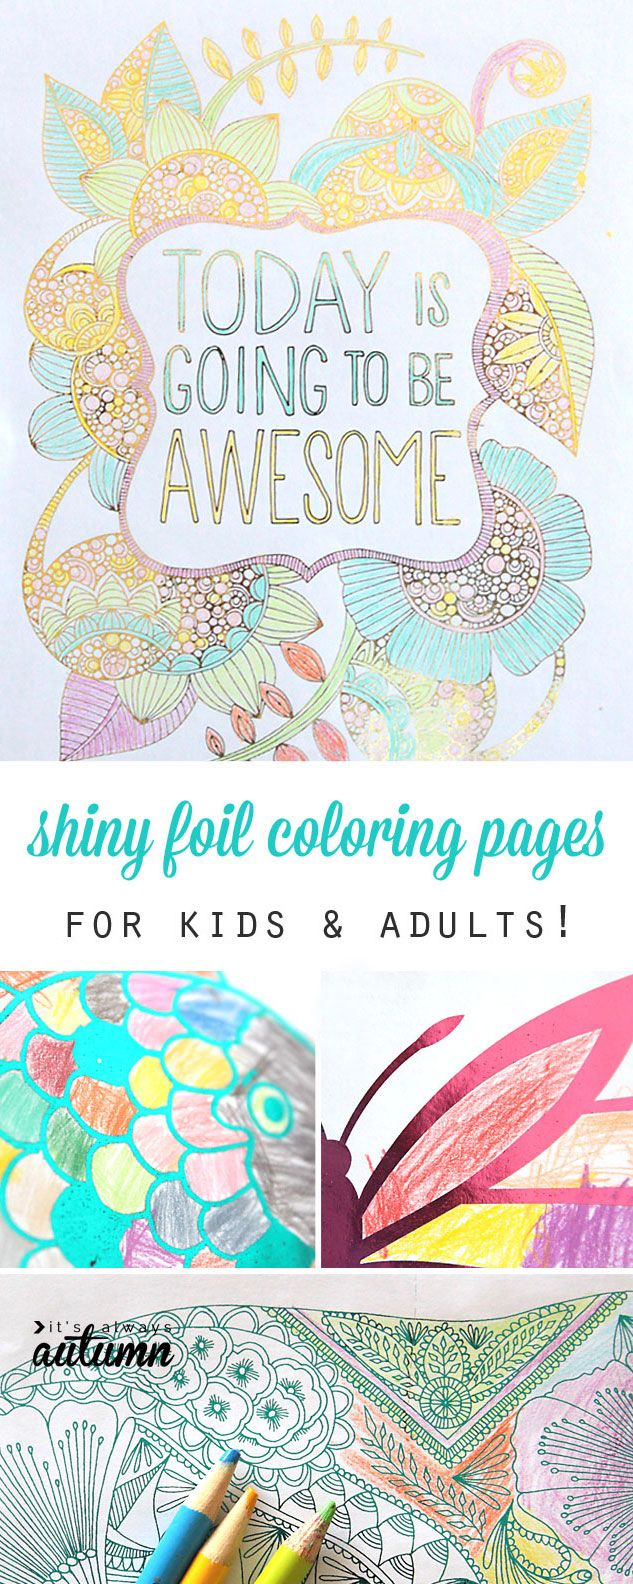 My kids would love this! Add shiny foil to any printable coloring page. #HSMinc #foilallthethings #sponsored